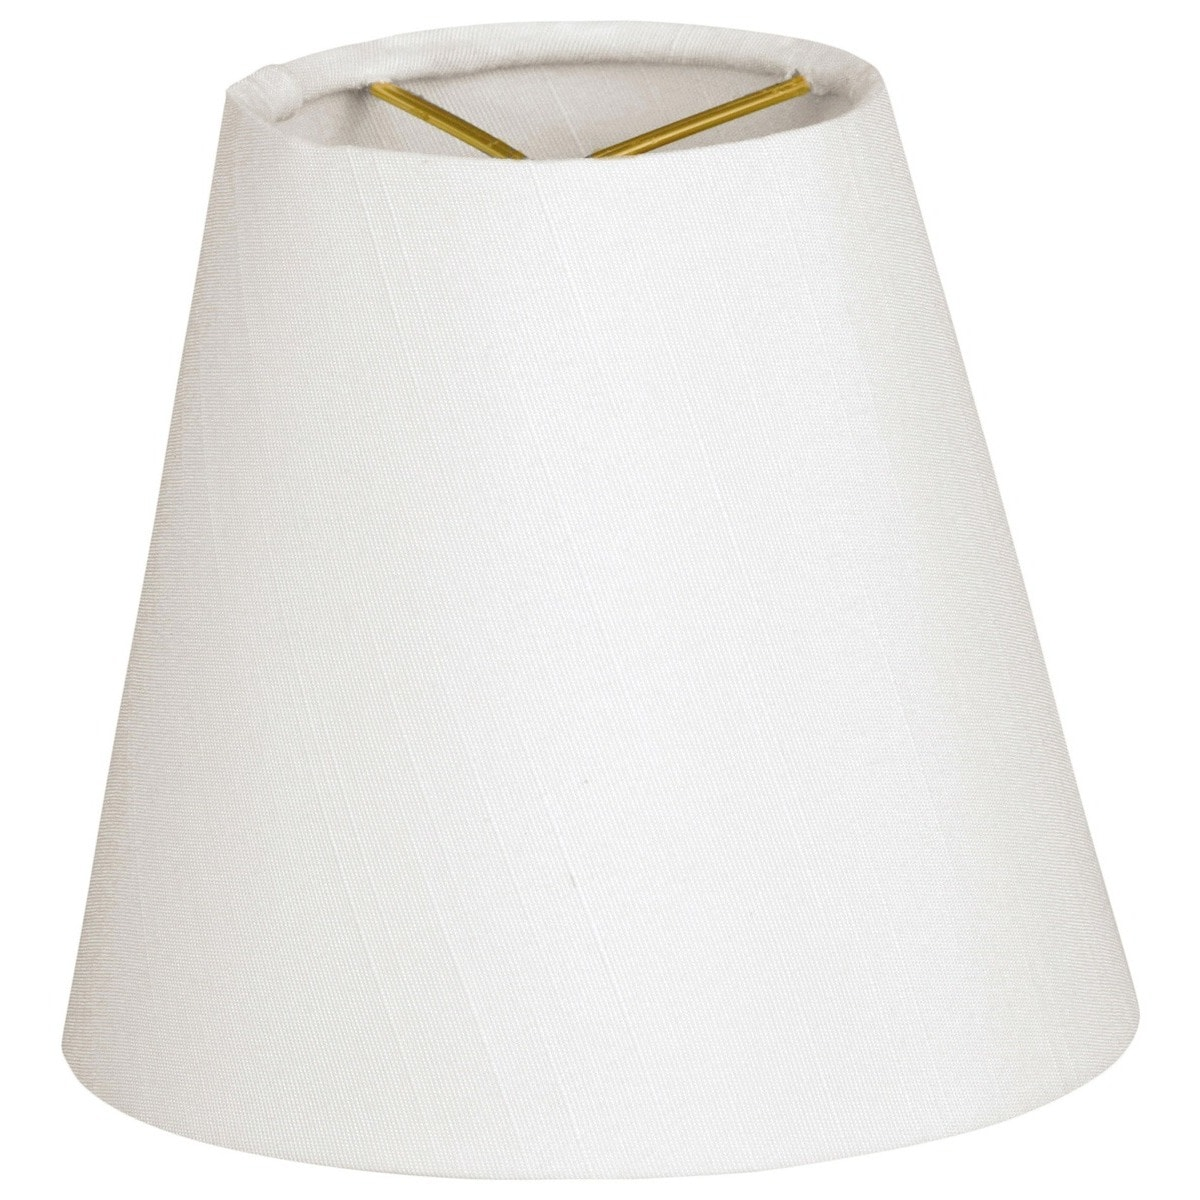 Royal Designs Hardback Empire White 3 X 5 X 4 5 Inch Clip On Chandelier Lamp Shade Set Of 6 On Sale Overstock 15052569